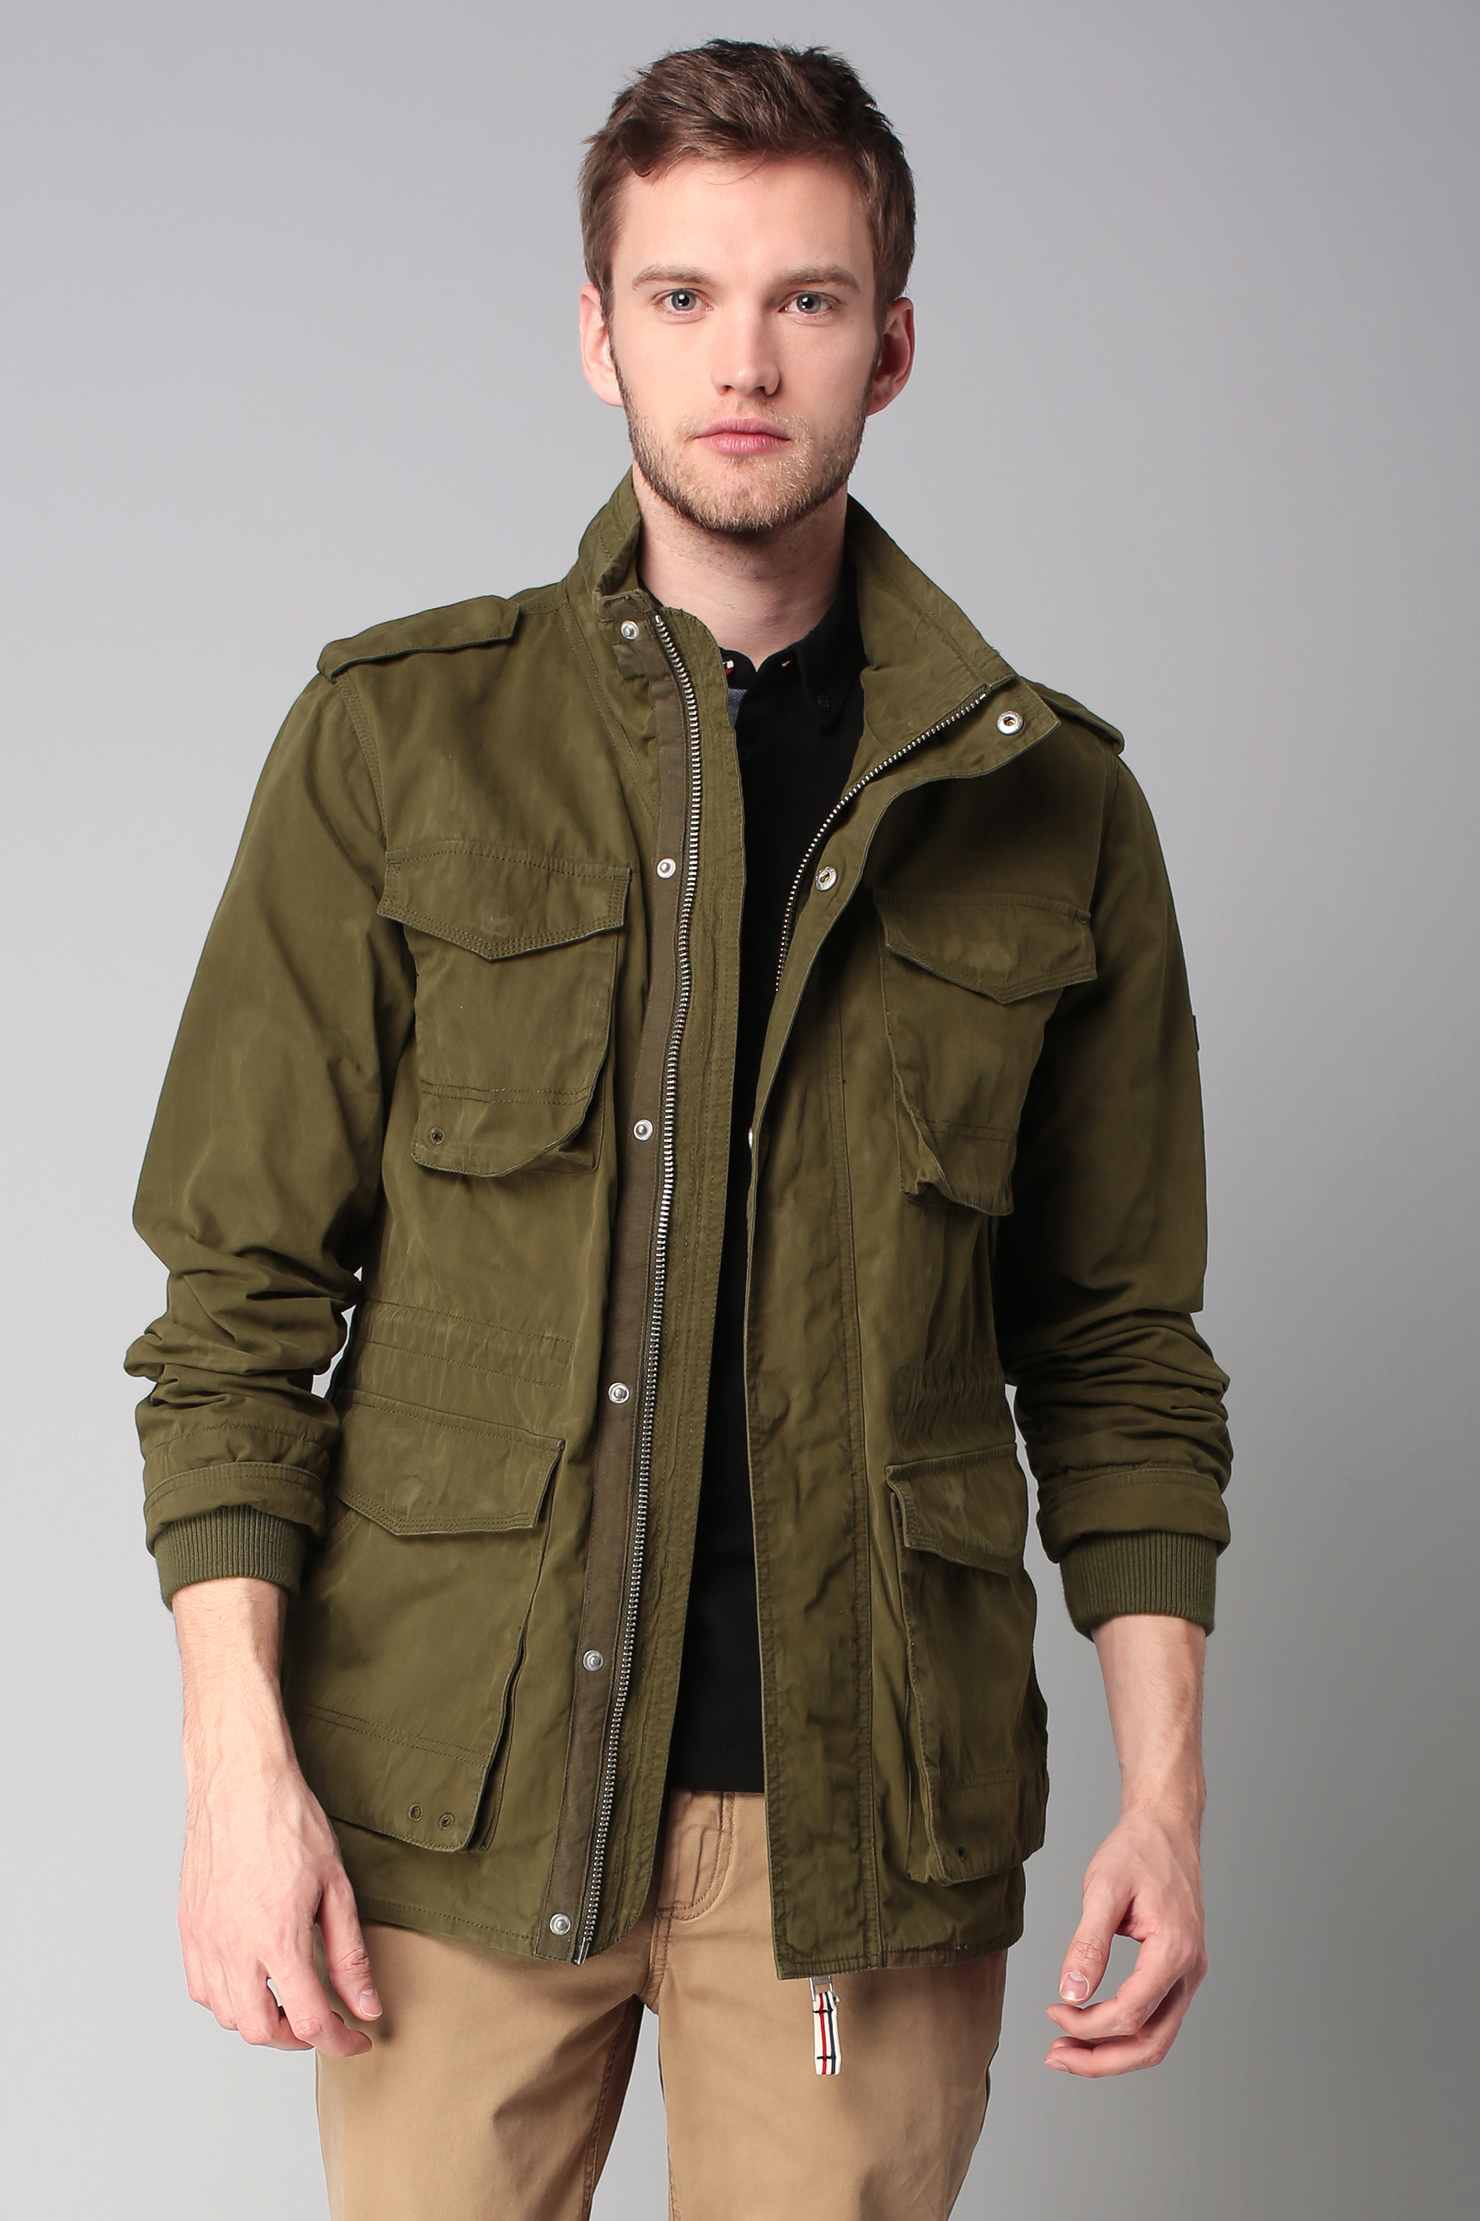 lyst hilfiger denim parka in green for men. Black Bedroom Furniture Sets. Home Design Ideas